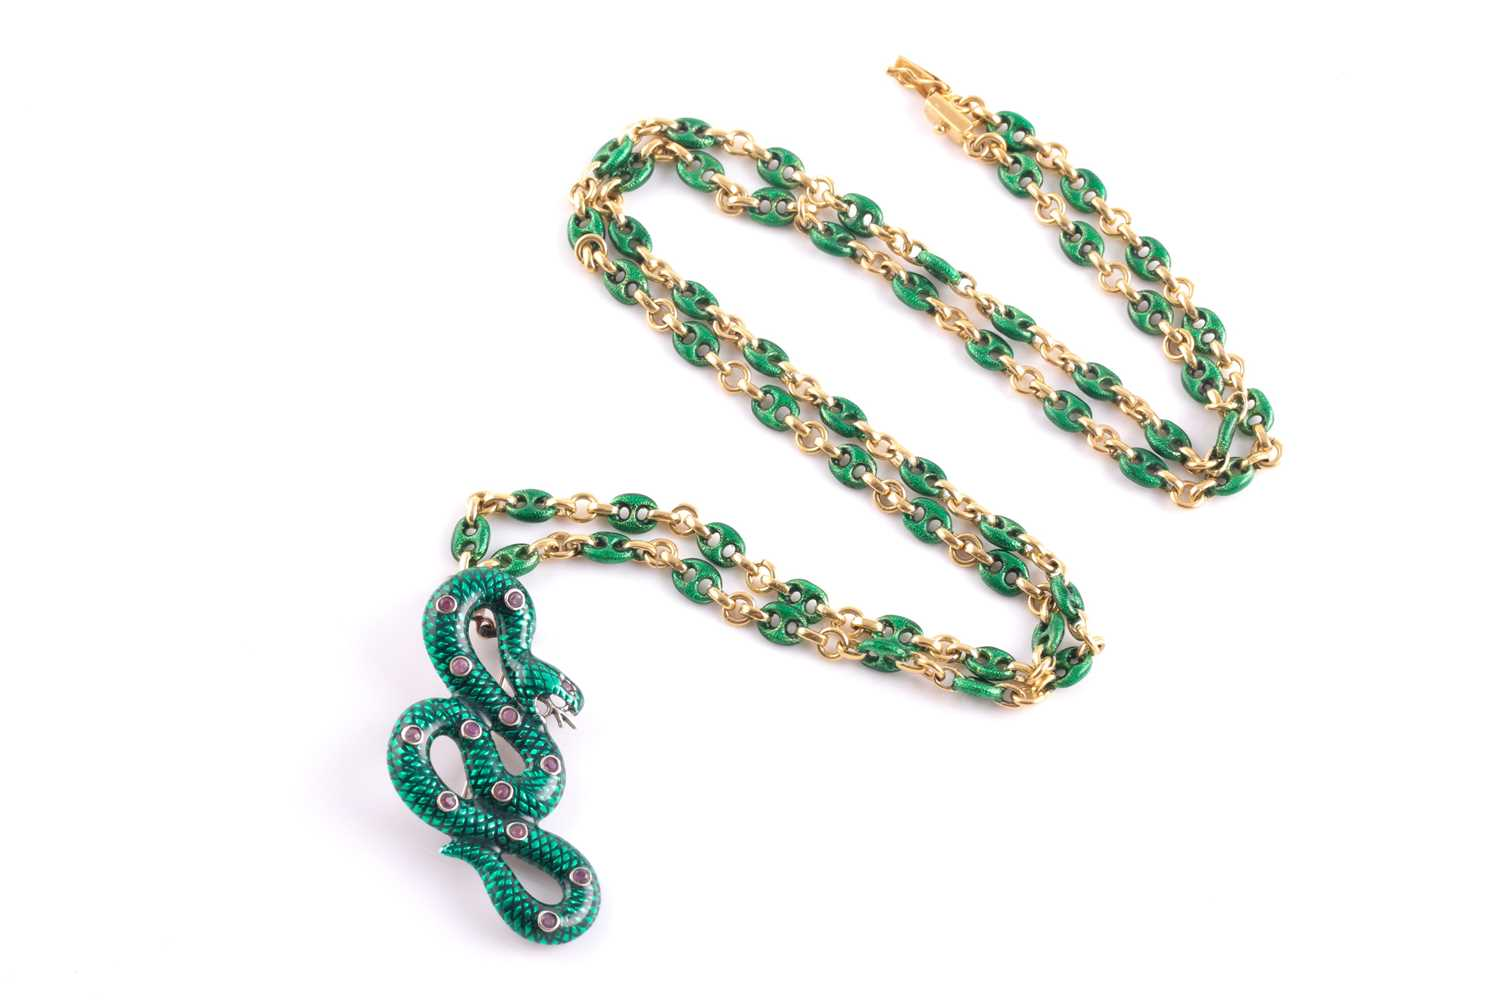 An 18ct yellow gold Continental anchor-link chain, alternated with plain and green enamel links, - Image 2 of 6